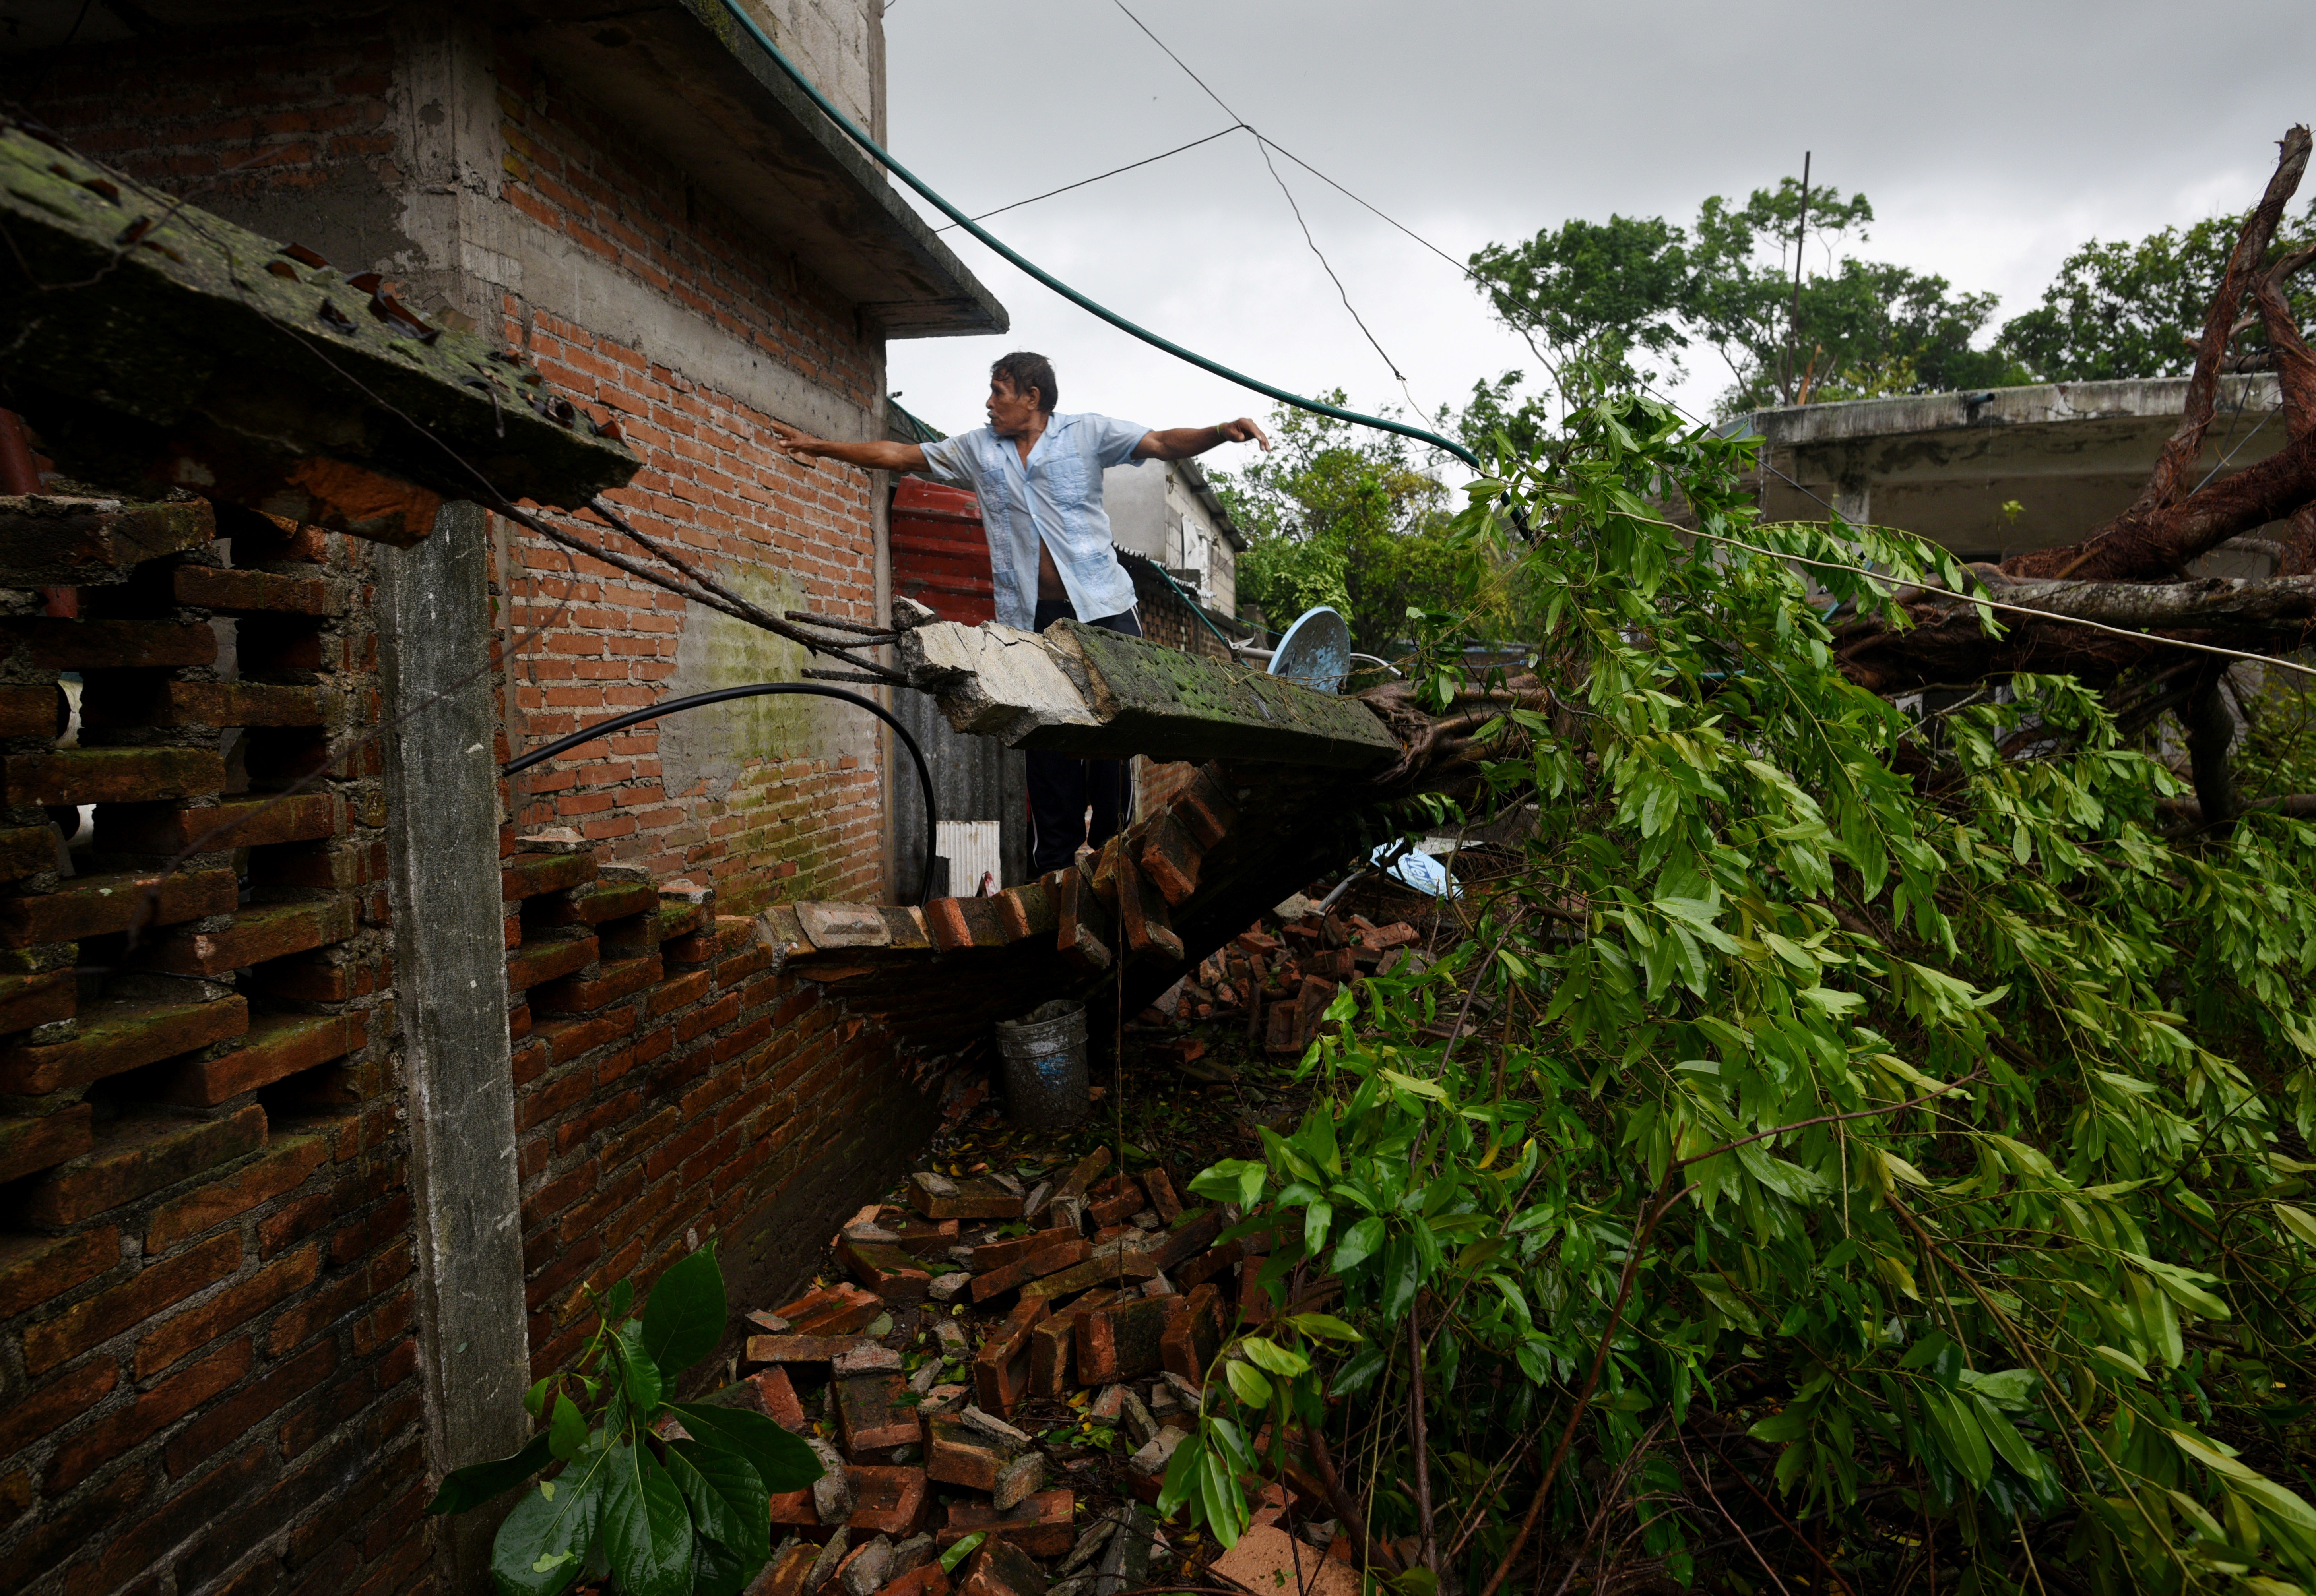 A man reviews damages on his home after Hurricane Grace slammed into the coast with torrential rains, in Costa Esmeralda, near Tecolutla, Mexico August 21, 2021.   REUTERS/Yahir Ceballos